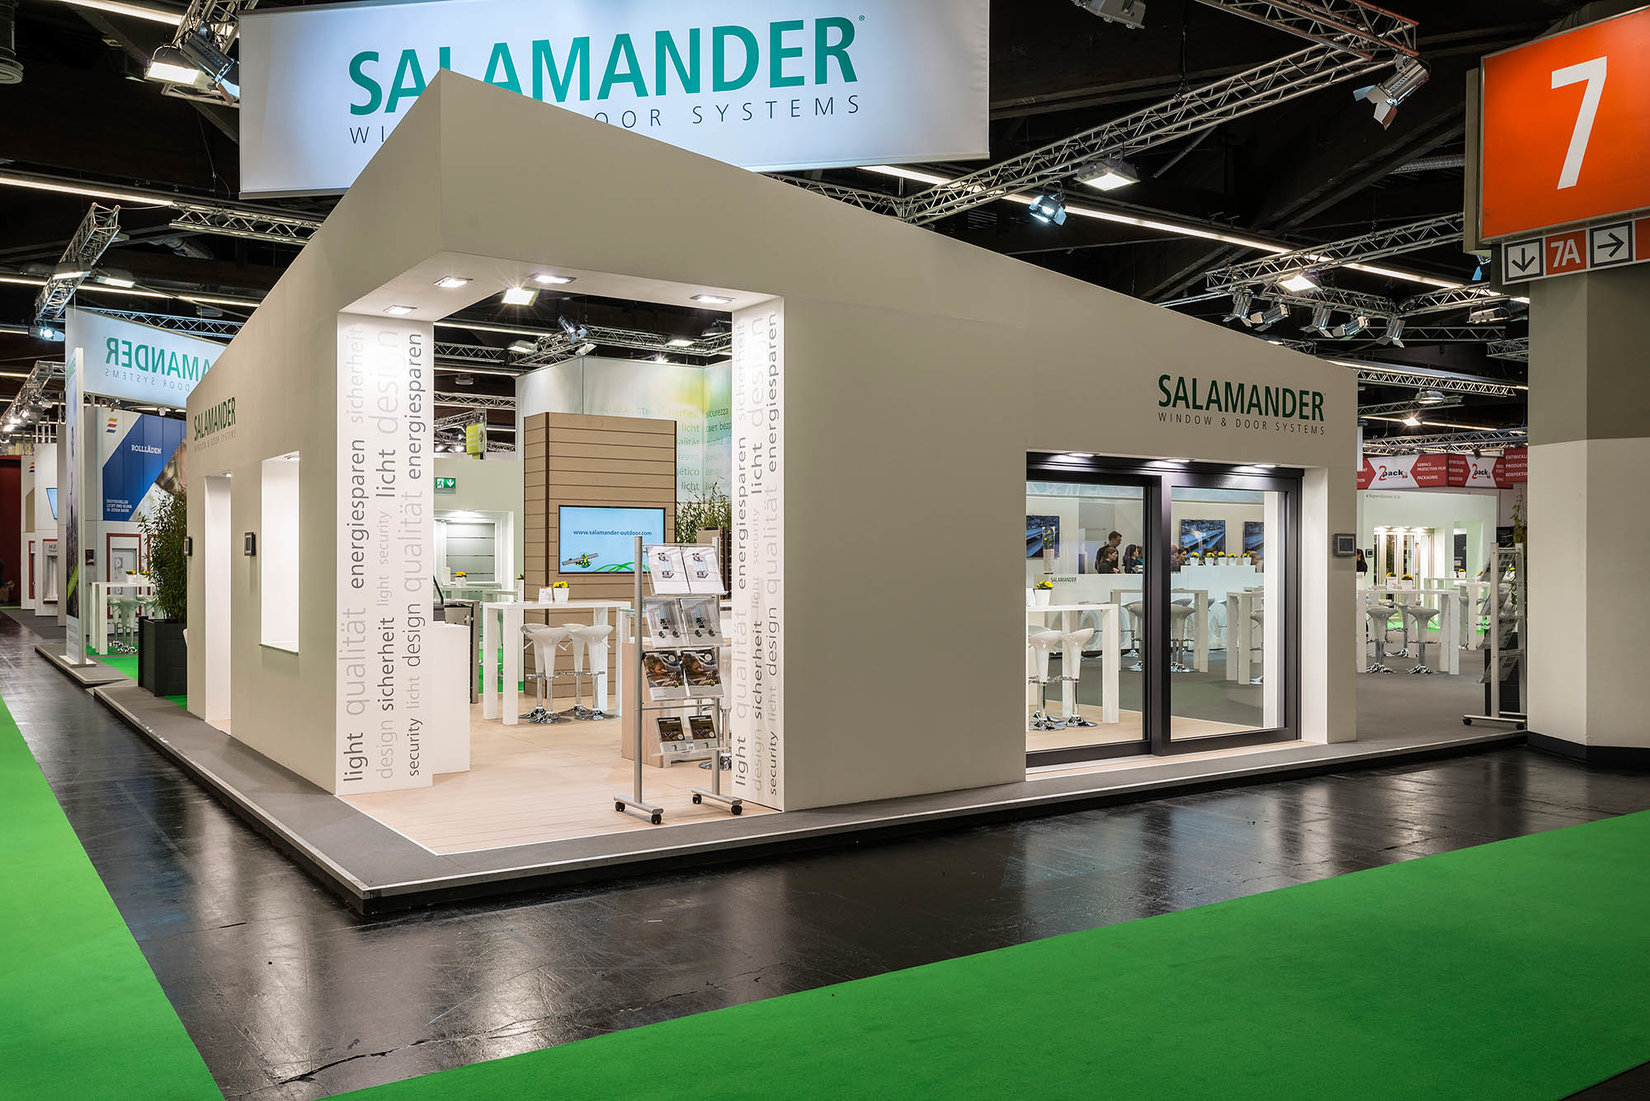 Salamander at Fensterbau/Frontale in 2016 (courtesy of Salamander)